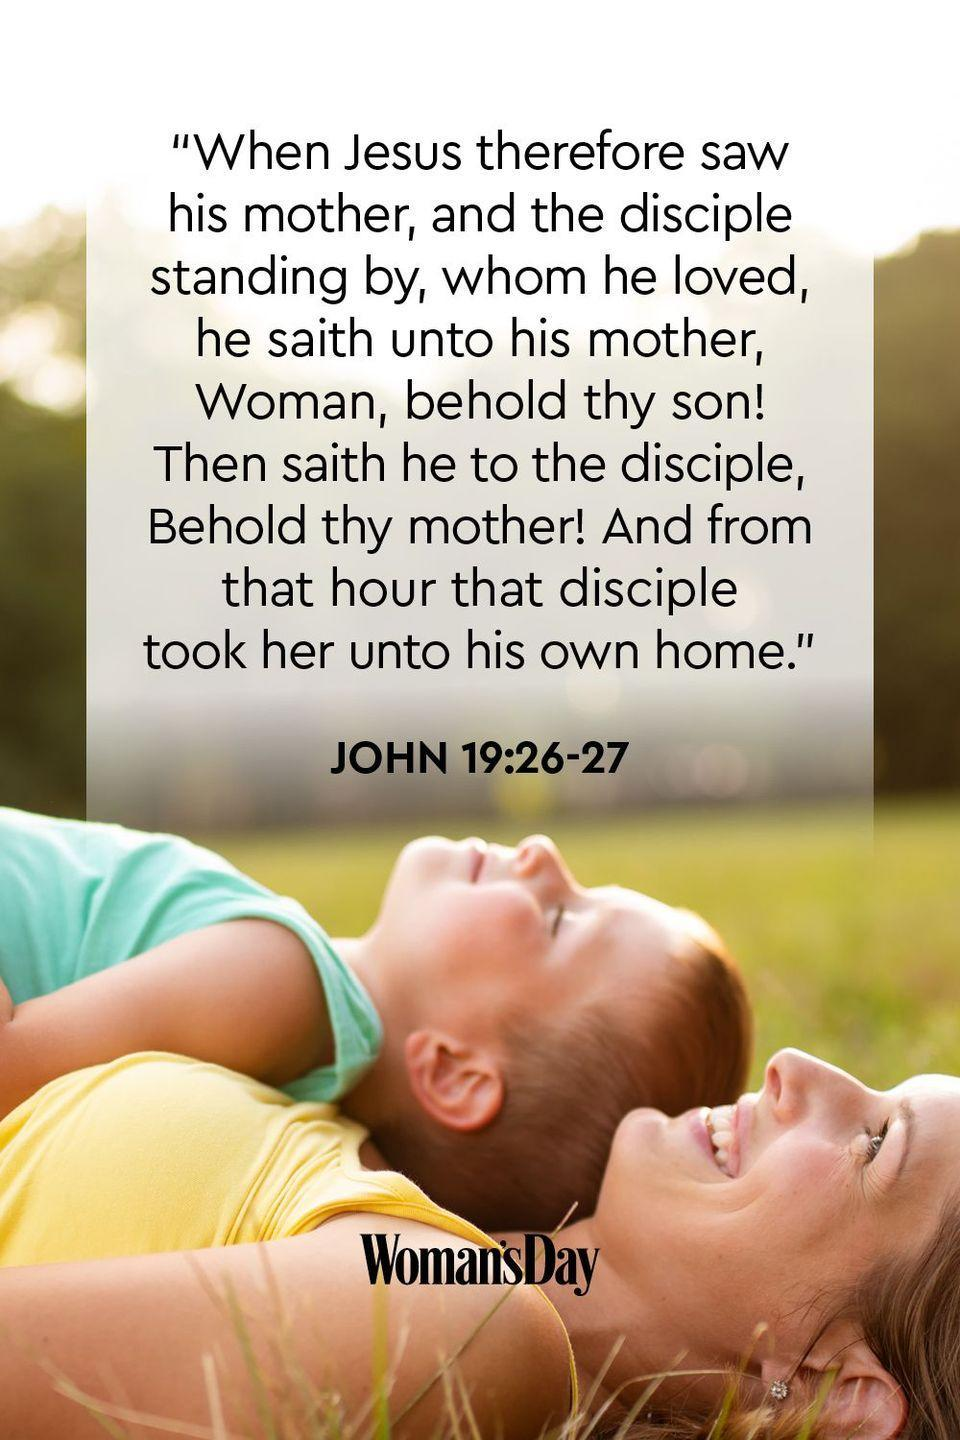 "<p>""When Jesus therefore saw his mother, and the disciple standing by, whom he loved, he saith unto his mother, Woman, behold thy son! Then saith he to the disciple, Behold thy mother! And from that hour that disciple took her unto his own home.""</p><p><strong>The Good News:</strong>Jesus' unwavering love for His mother, Mary, set the standard for how children should honor their own mothers. </p>"